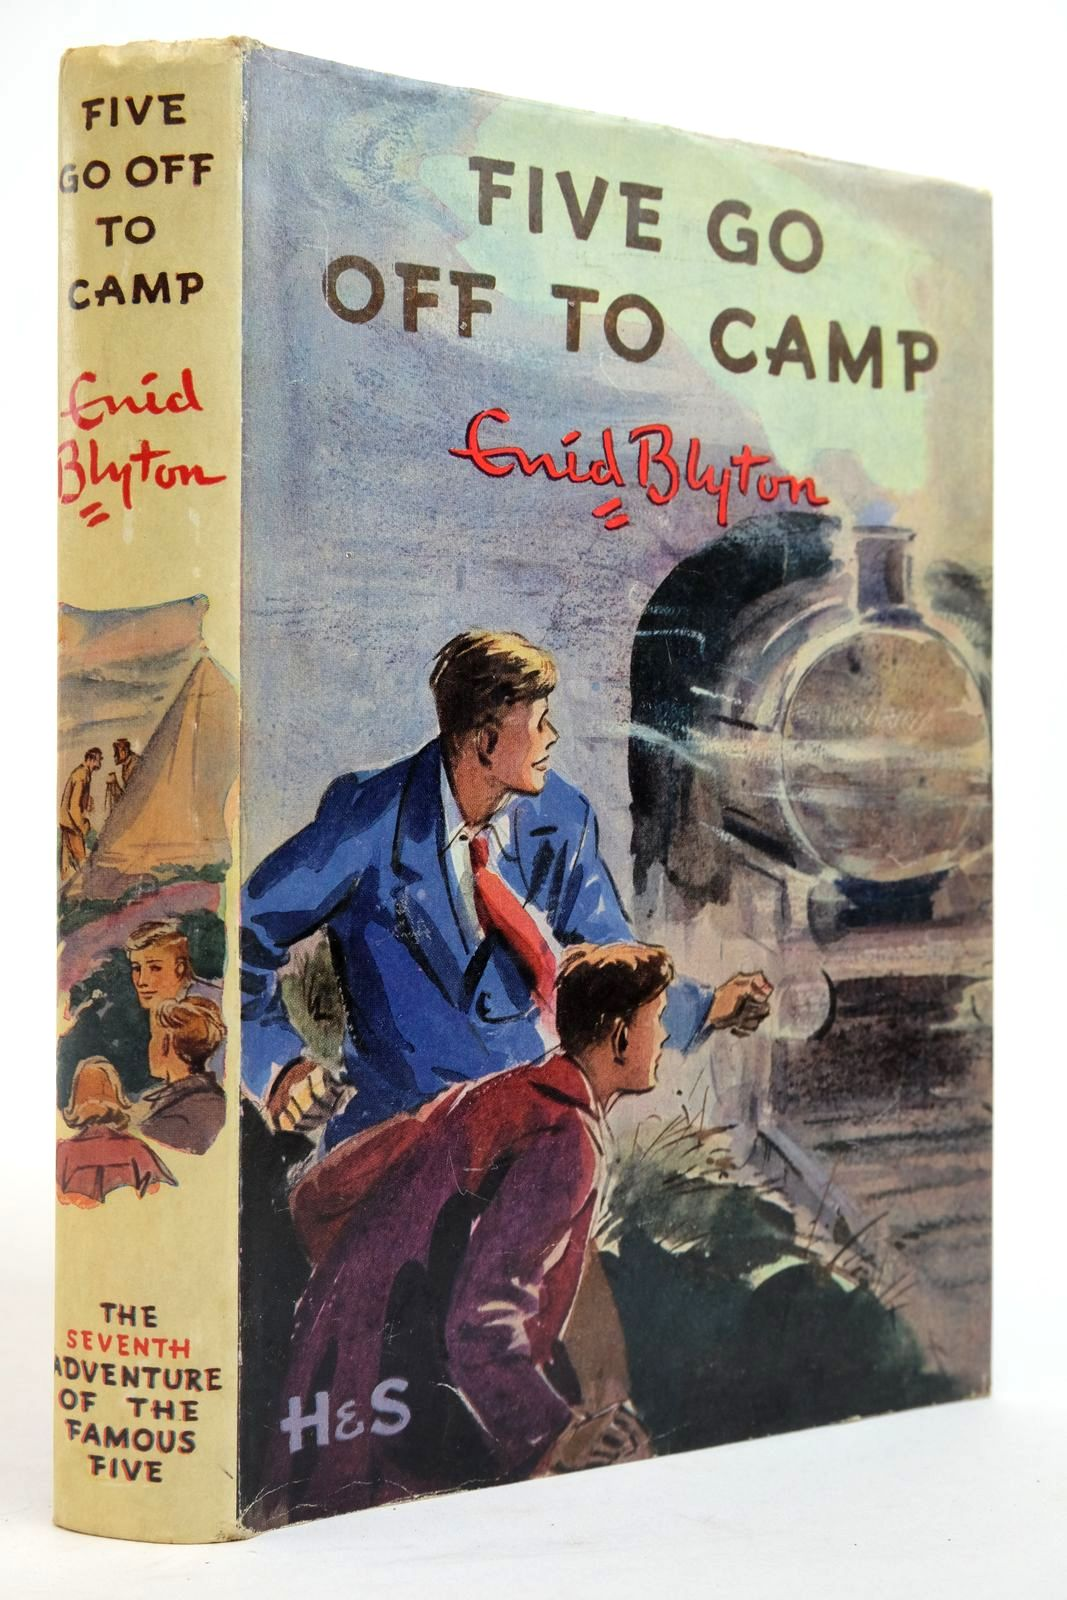 Photo of FIVE GO OFF TO CAMP written by Blyton, Enid illustrated by Soper, Eileen published by Hodder & Stoughton (STOCK CODE: 2134945)  for sale by Stella & Rose's Books